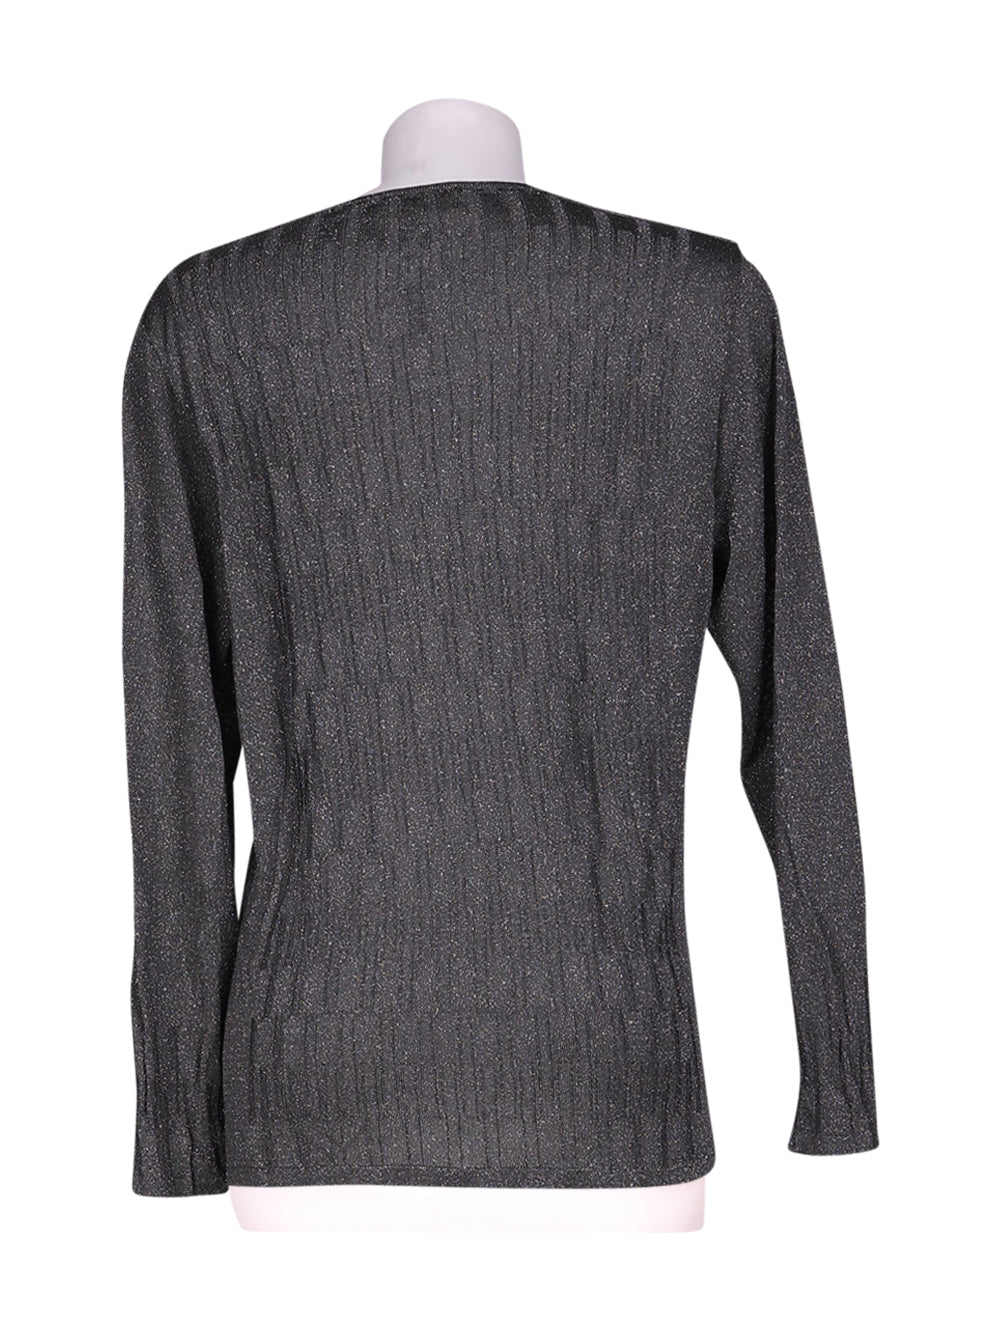 Back photo of Preloved giam Grey Woman's sweater - size 10/M